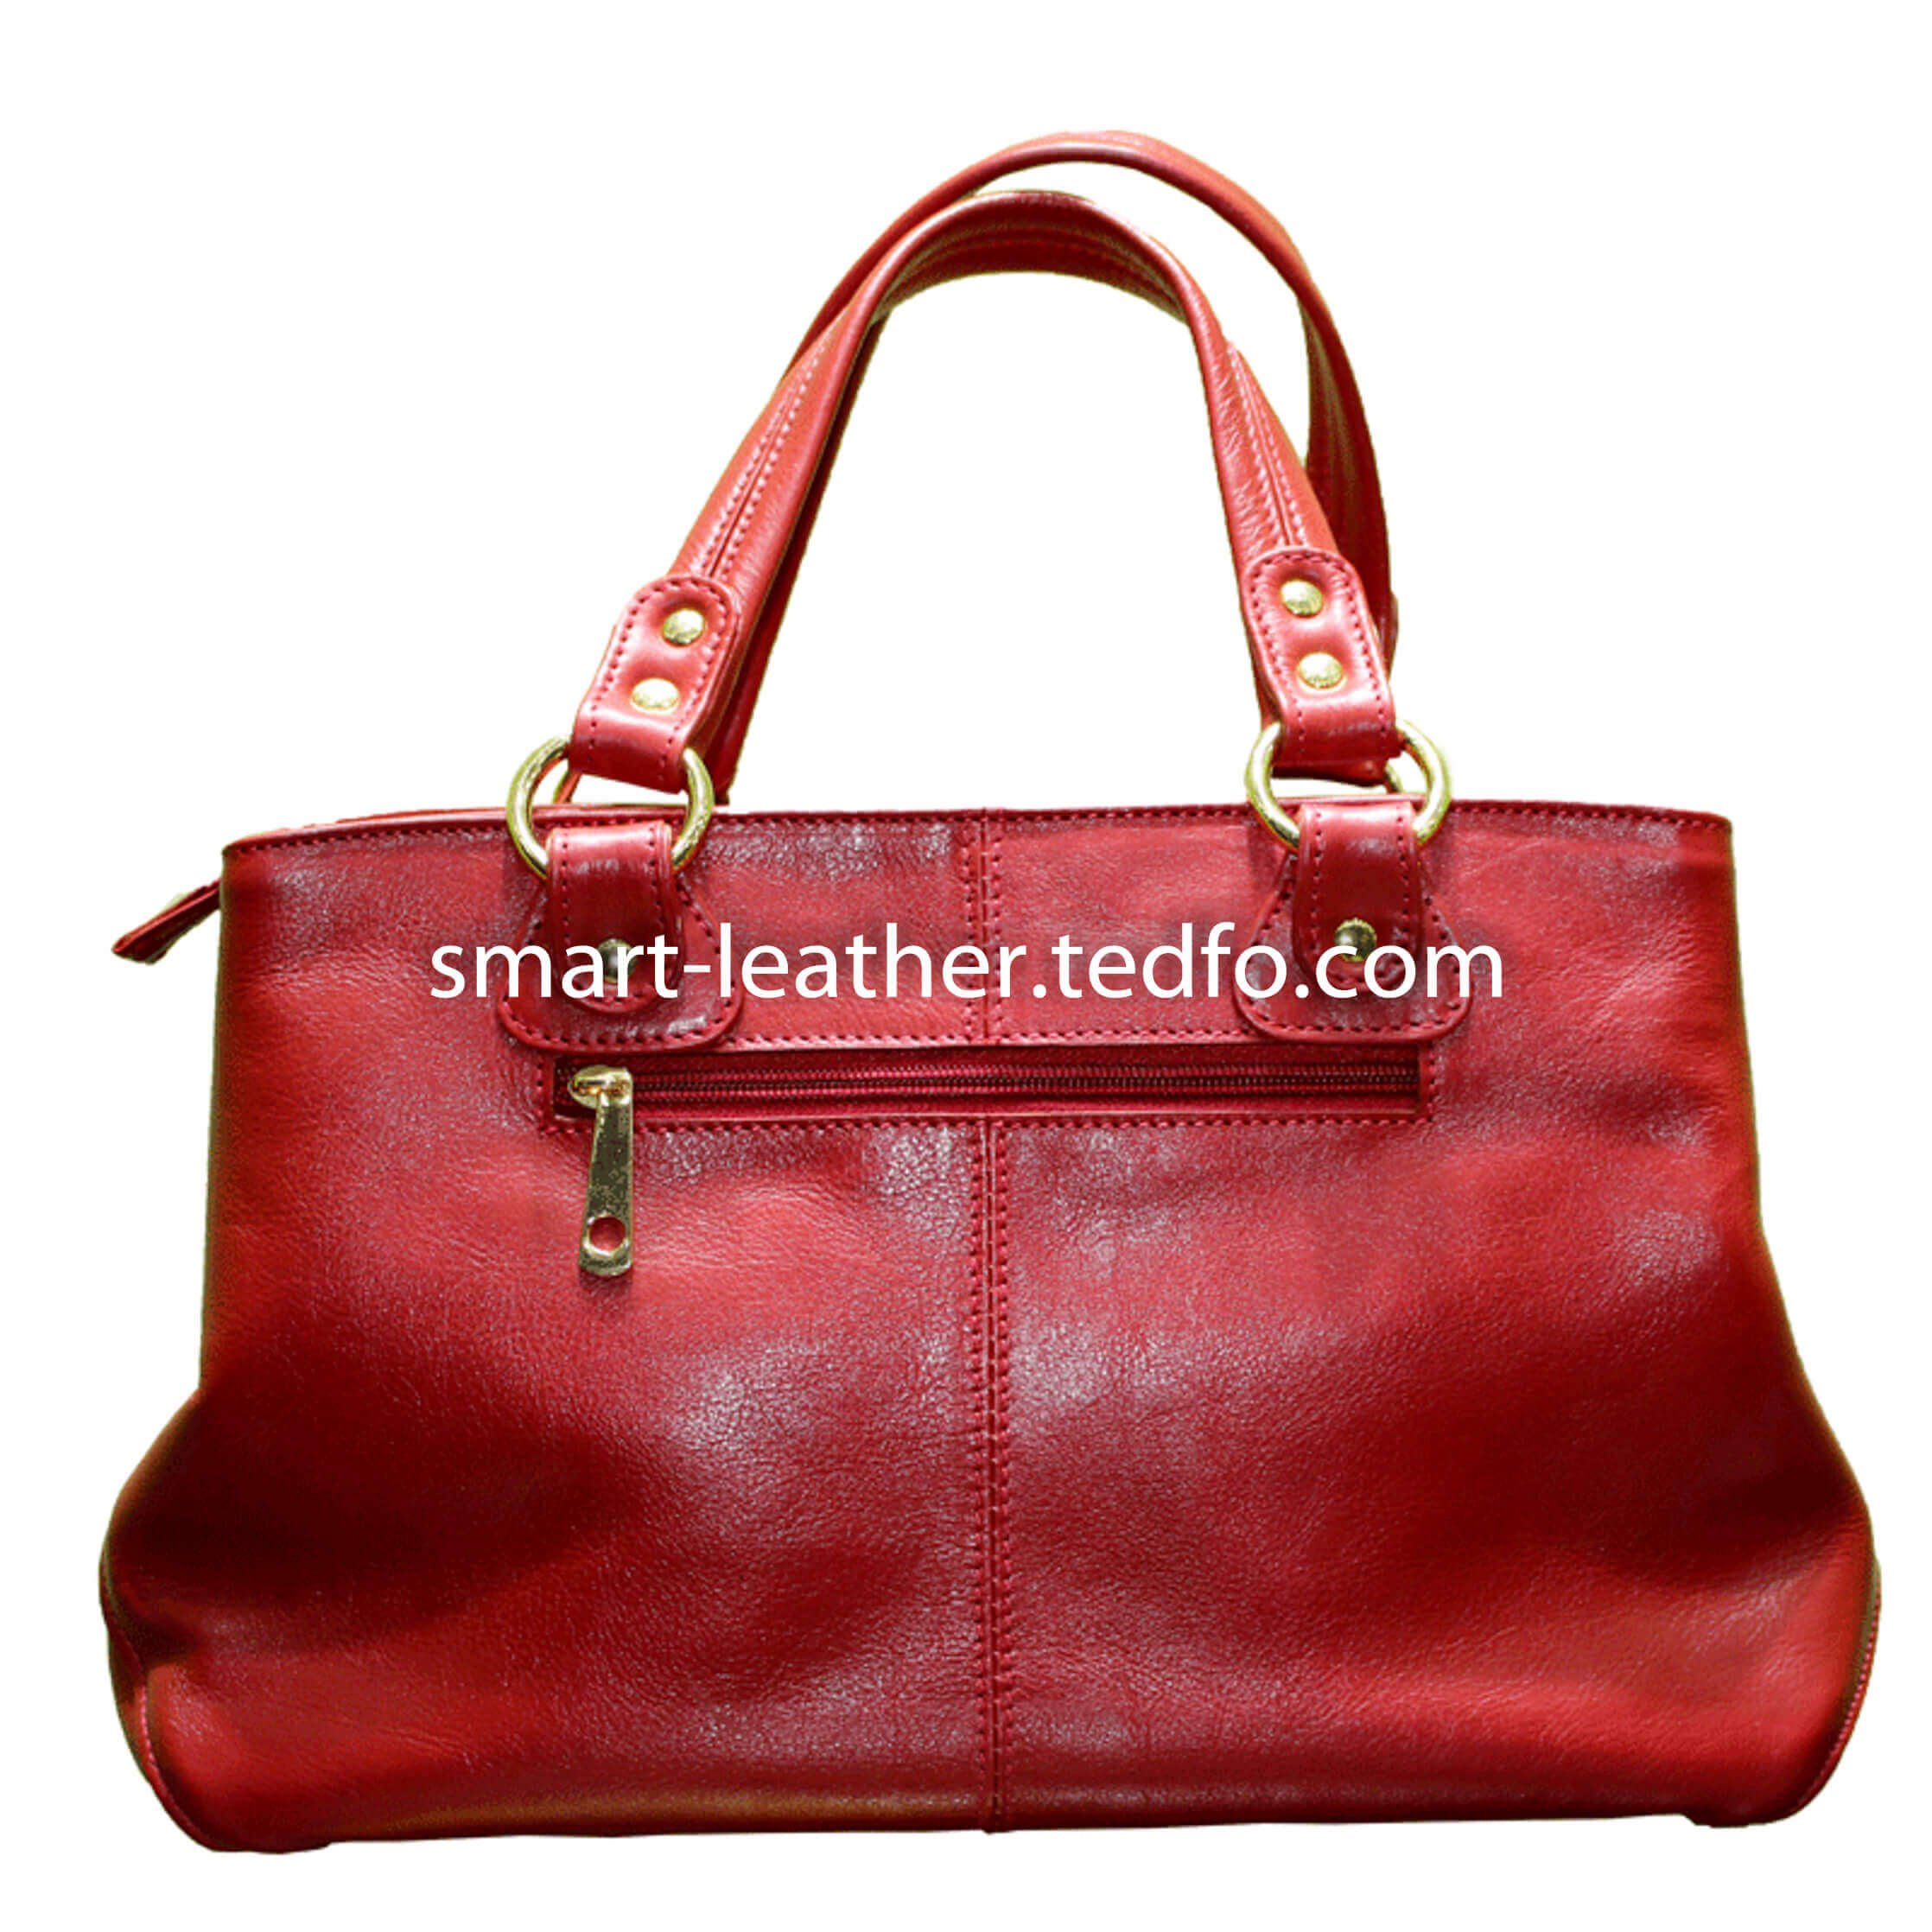 Wholesale Fashionable Ladies Handbag (100% Leather Made) - TEDFO 7609dd708d77b